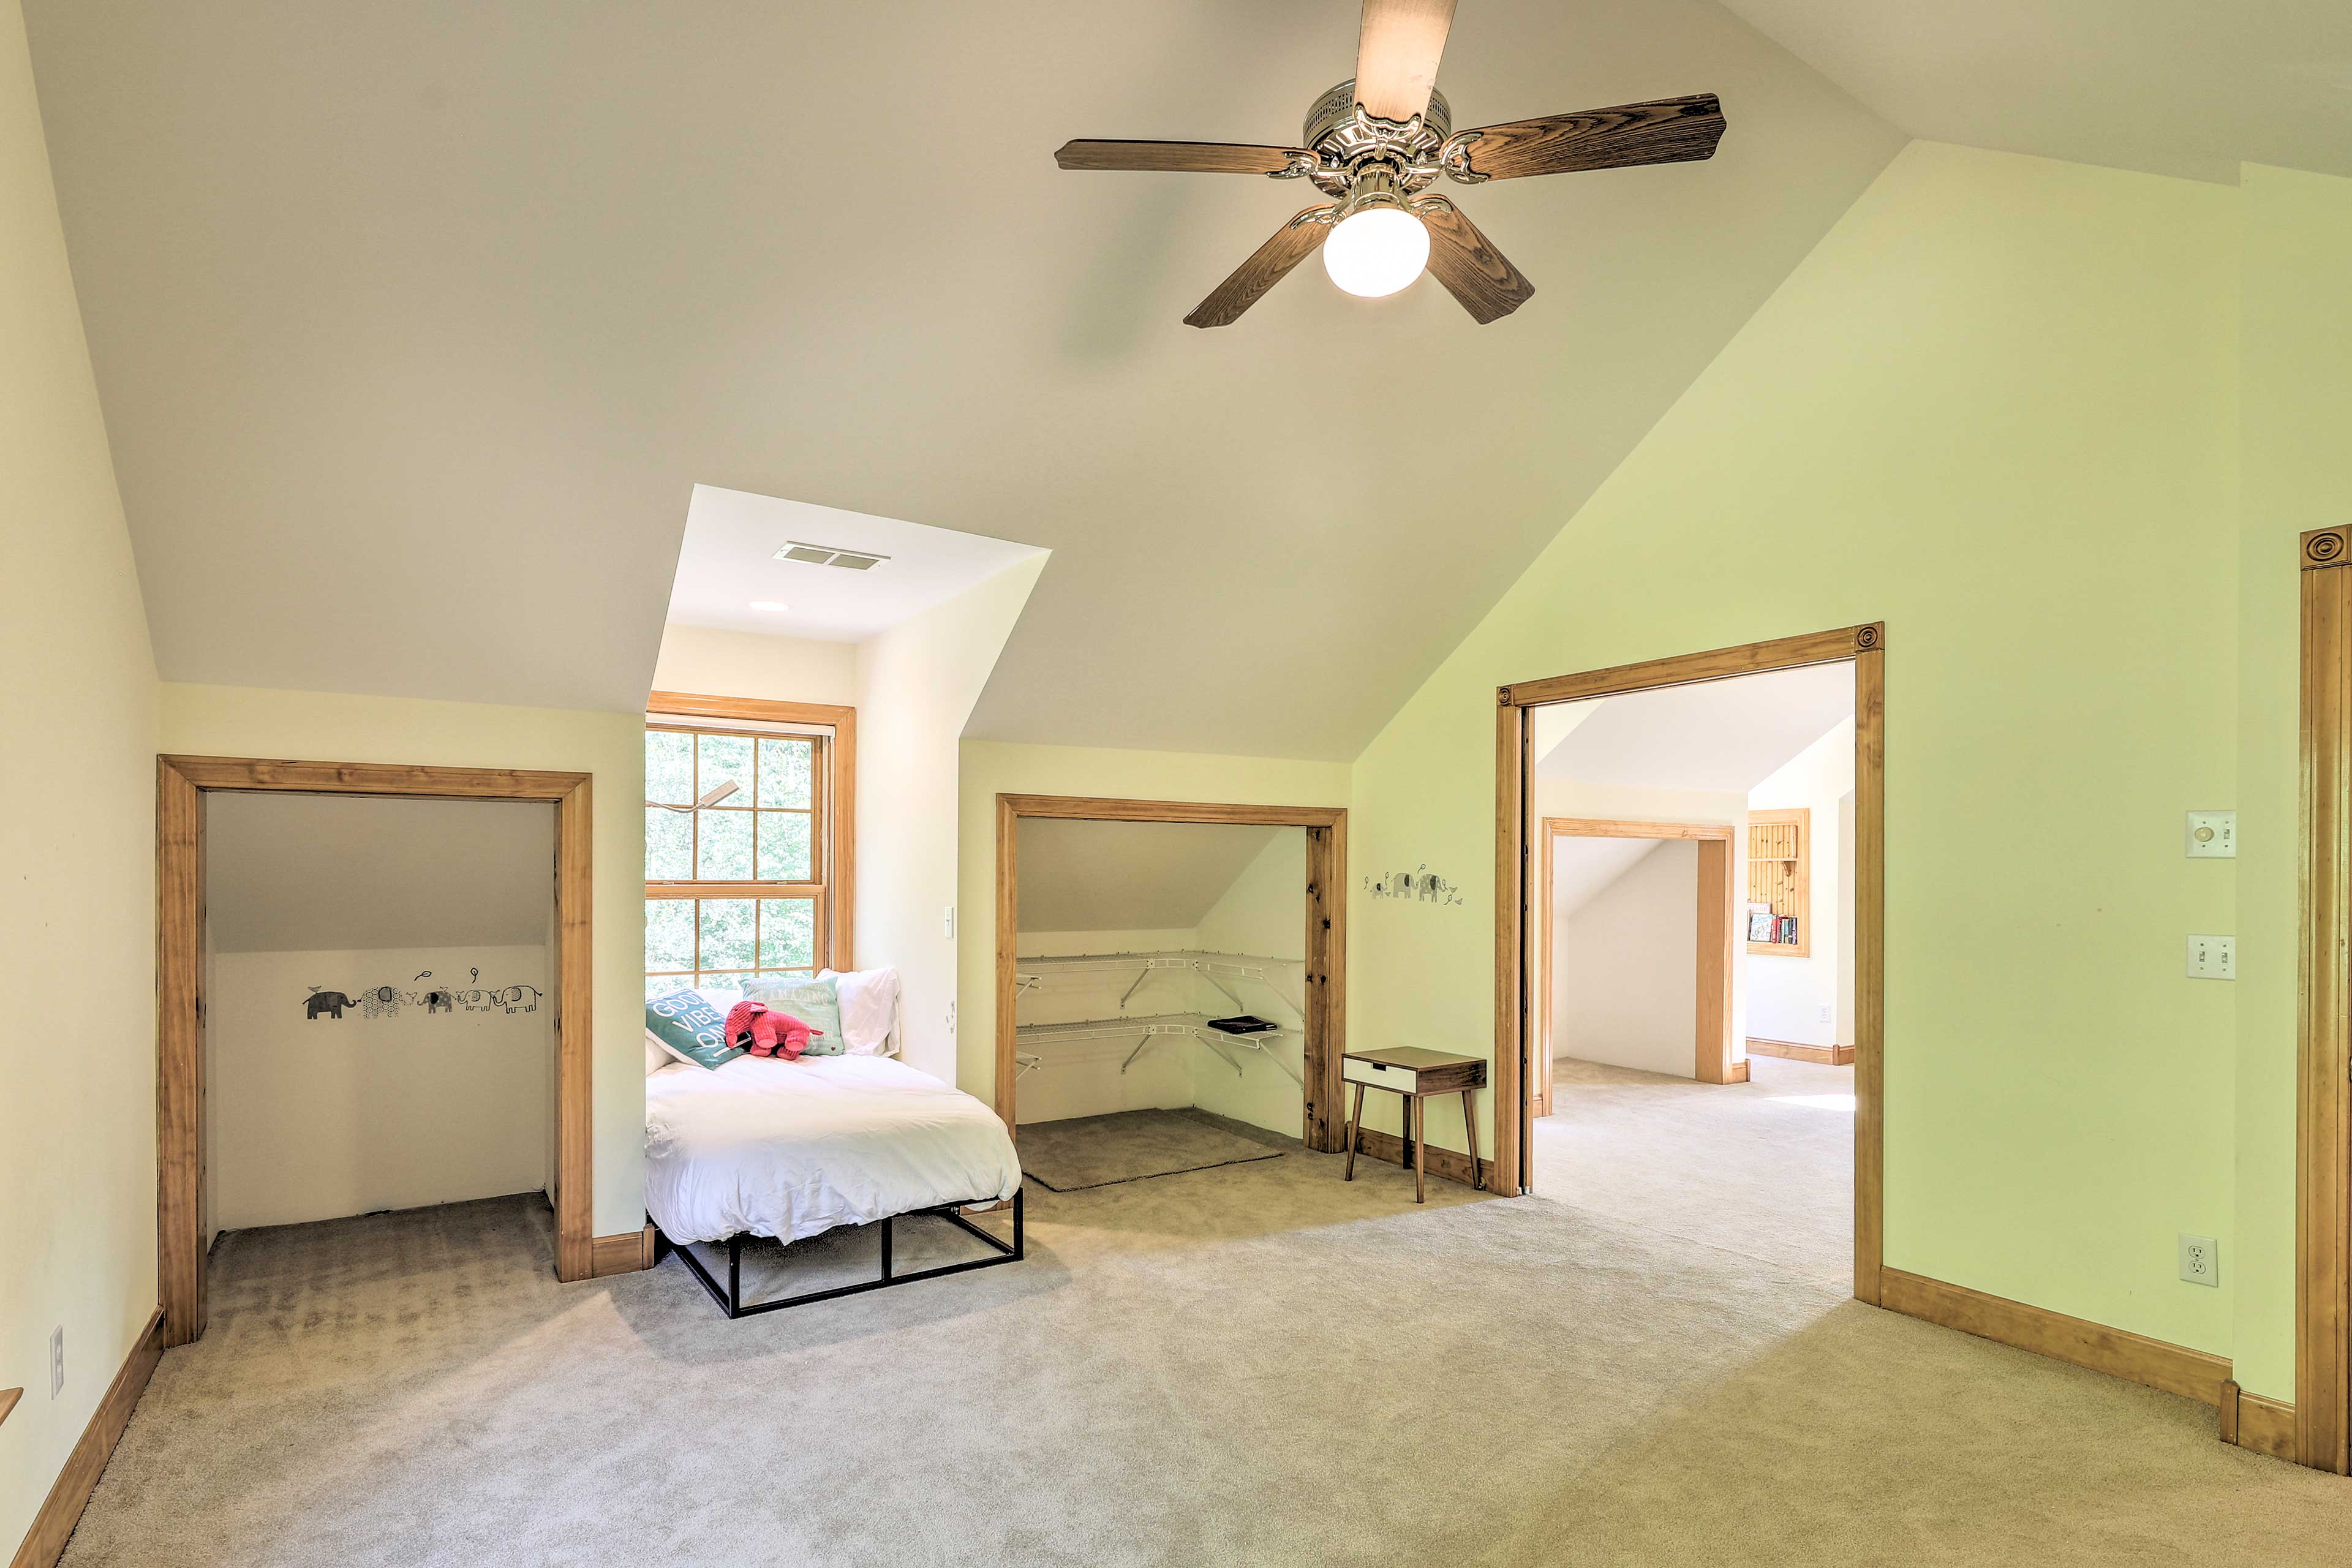 This spacious bedroom boasts 1 twin bed.